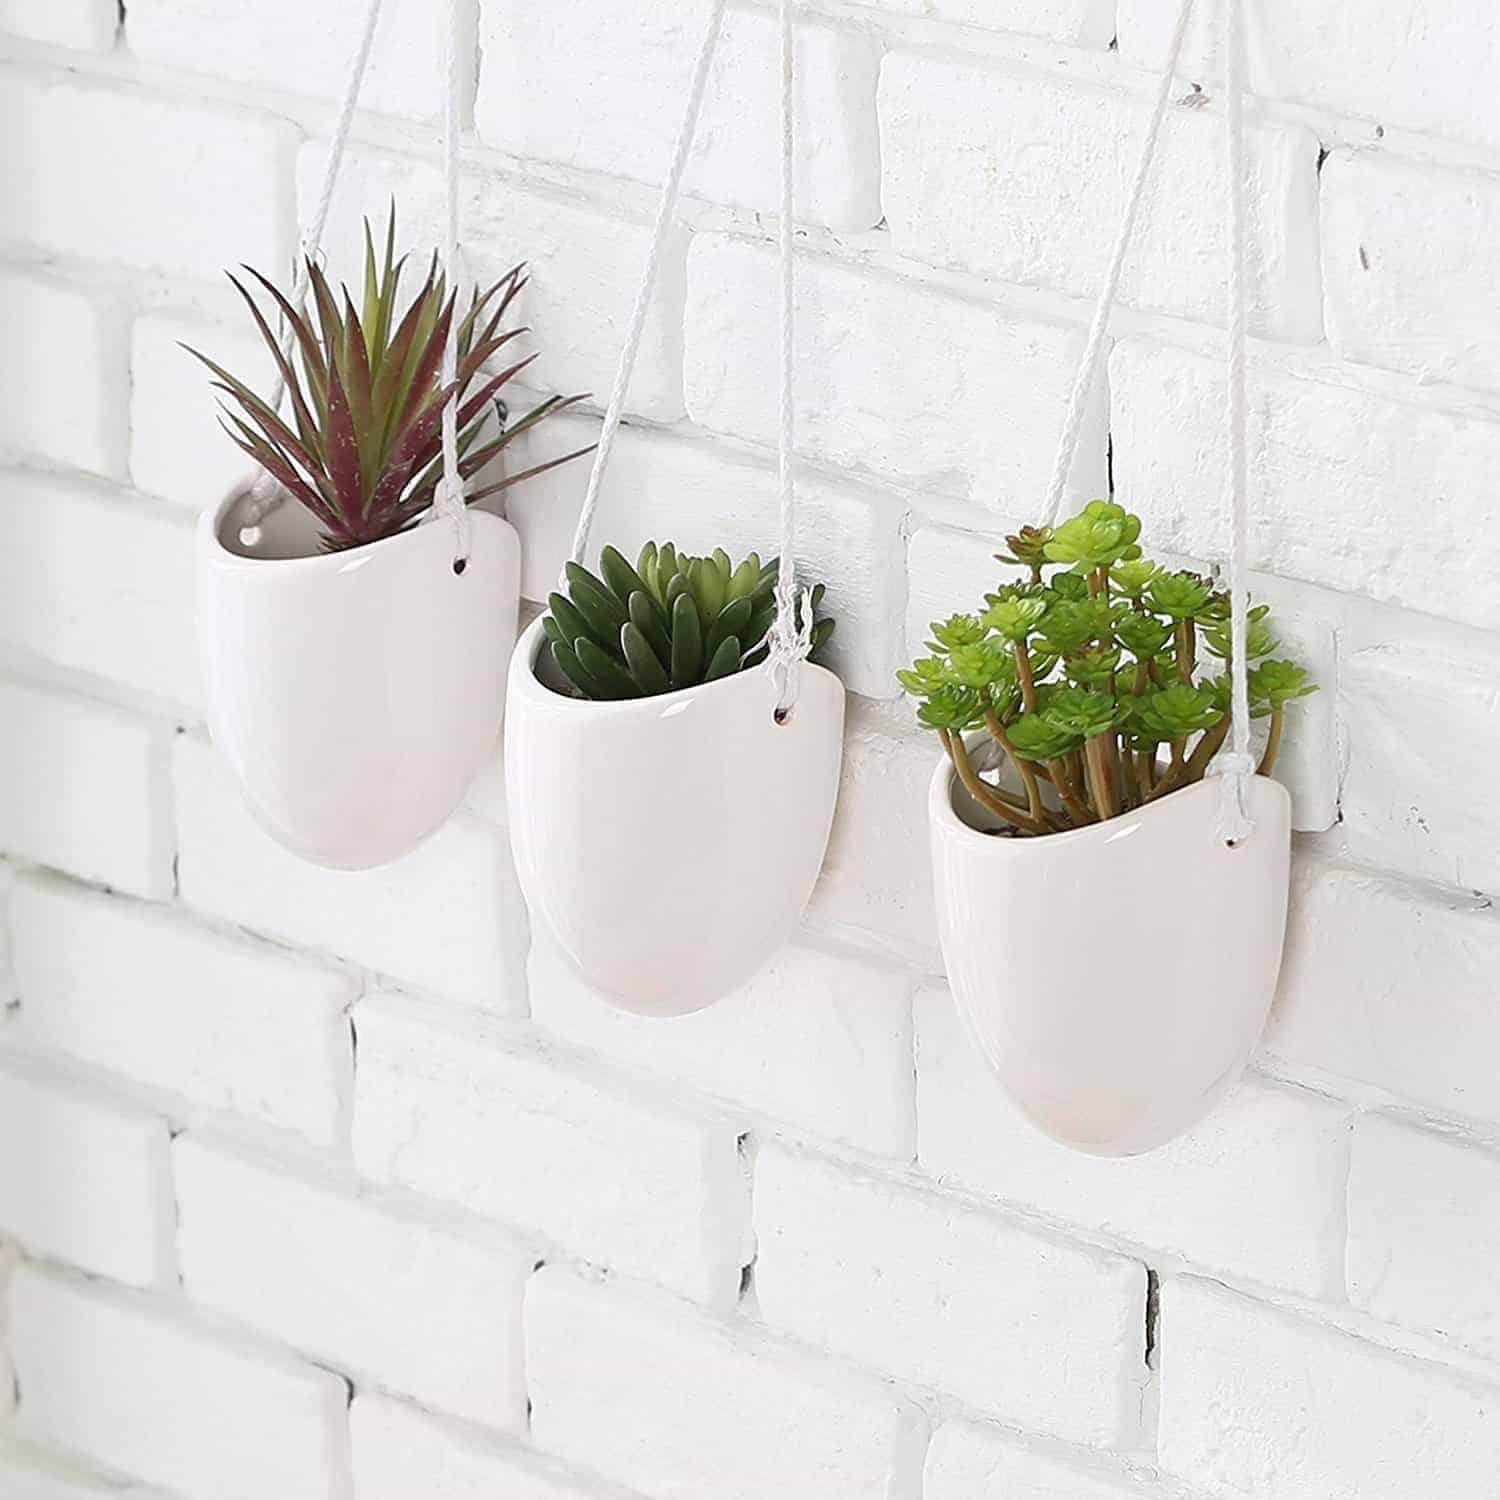 Wall Hanging Plants Best Succulent Wall Planters Vertical Garden Kit